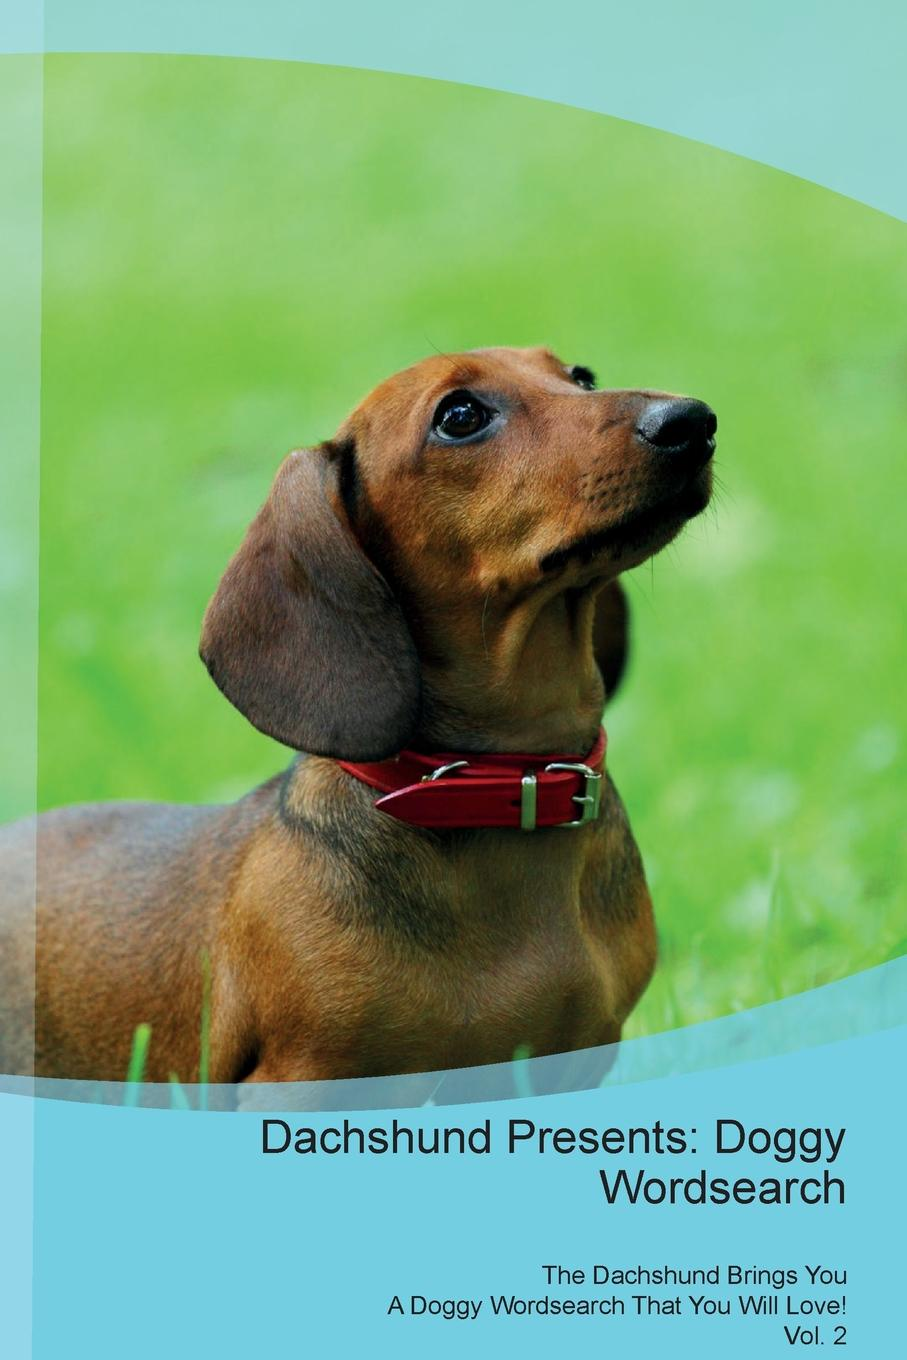 Doggy Puzzles Dachshund Presents. Wordsearch The Brings You A That Will Love! Vol. 2